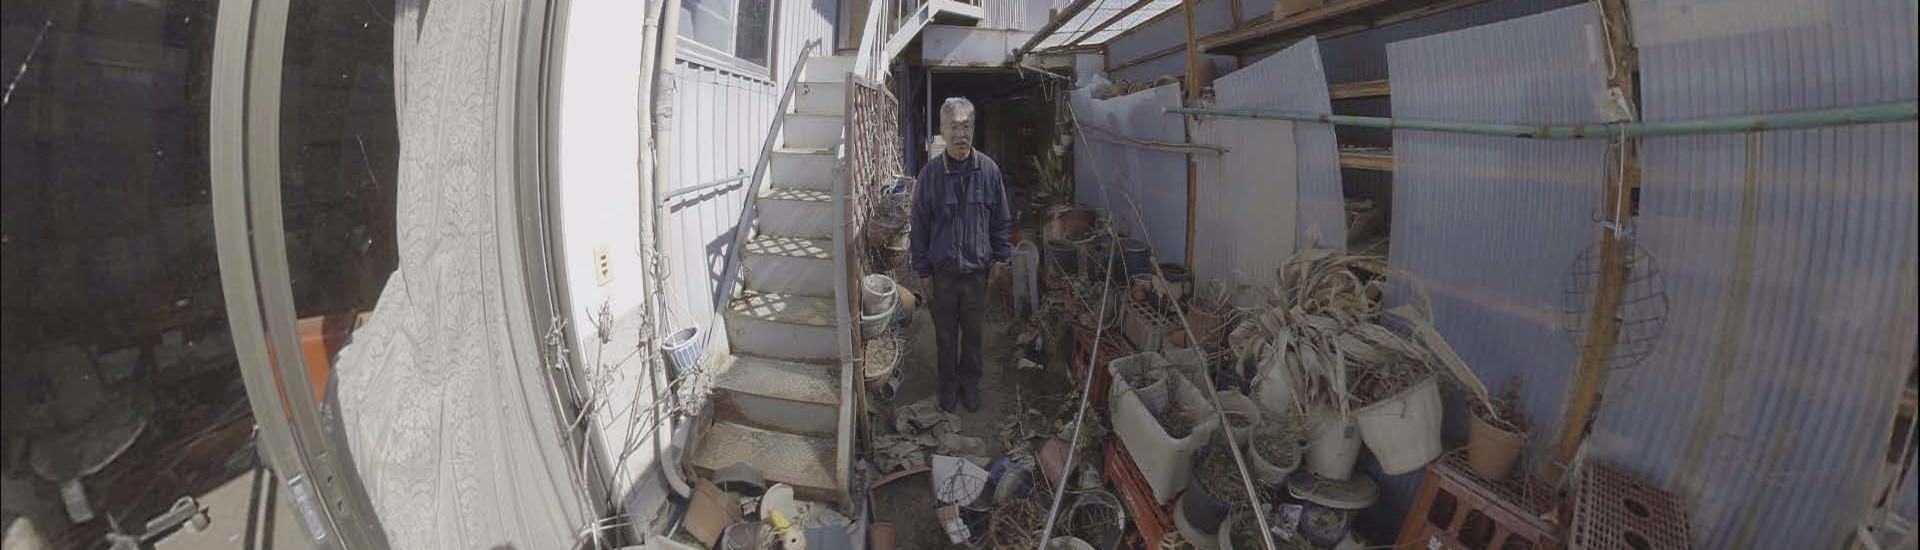 Fukushima: Contaminated Lives